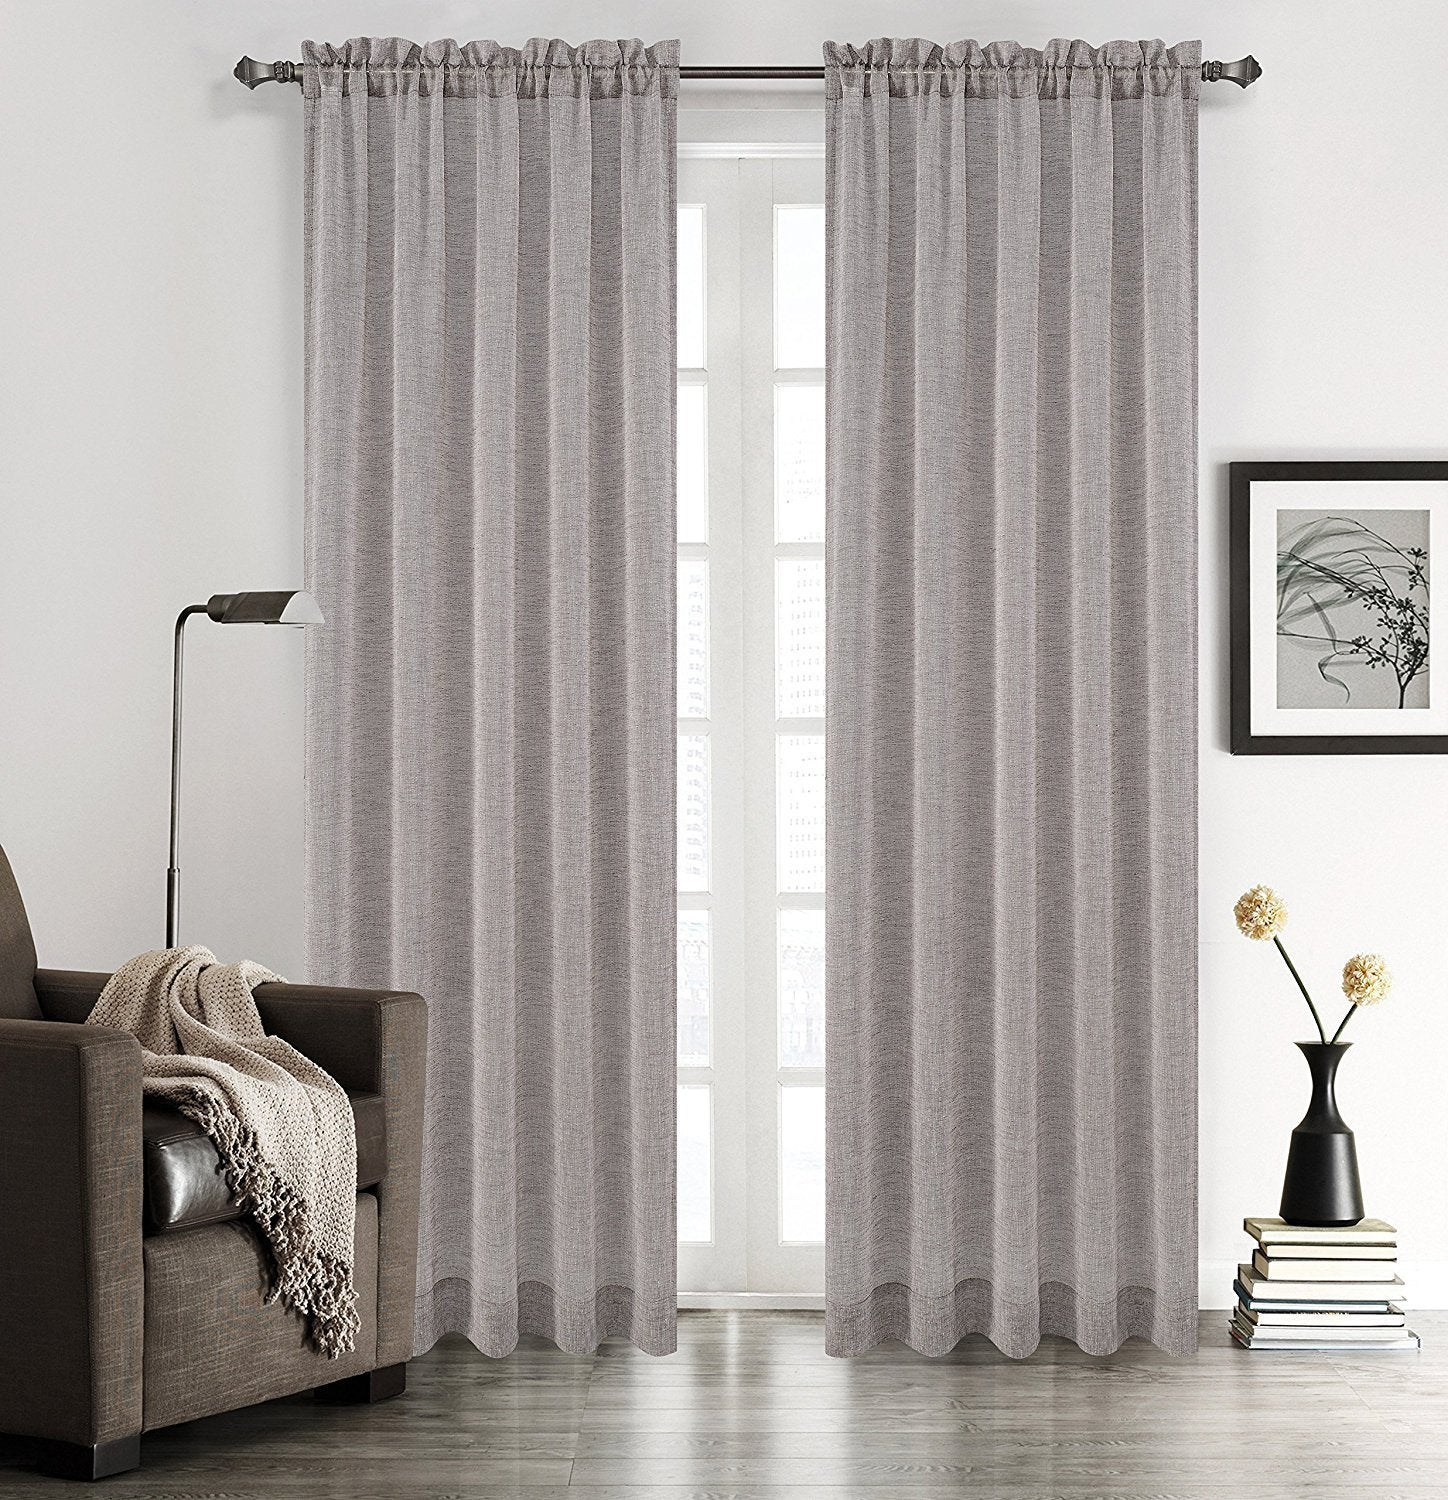 panels for ideas cheap curtain chicago decor captivating sliding treatments furniture types curtains home window images of decoration